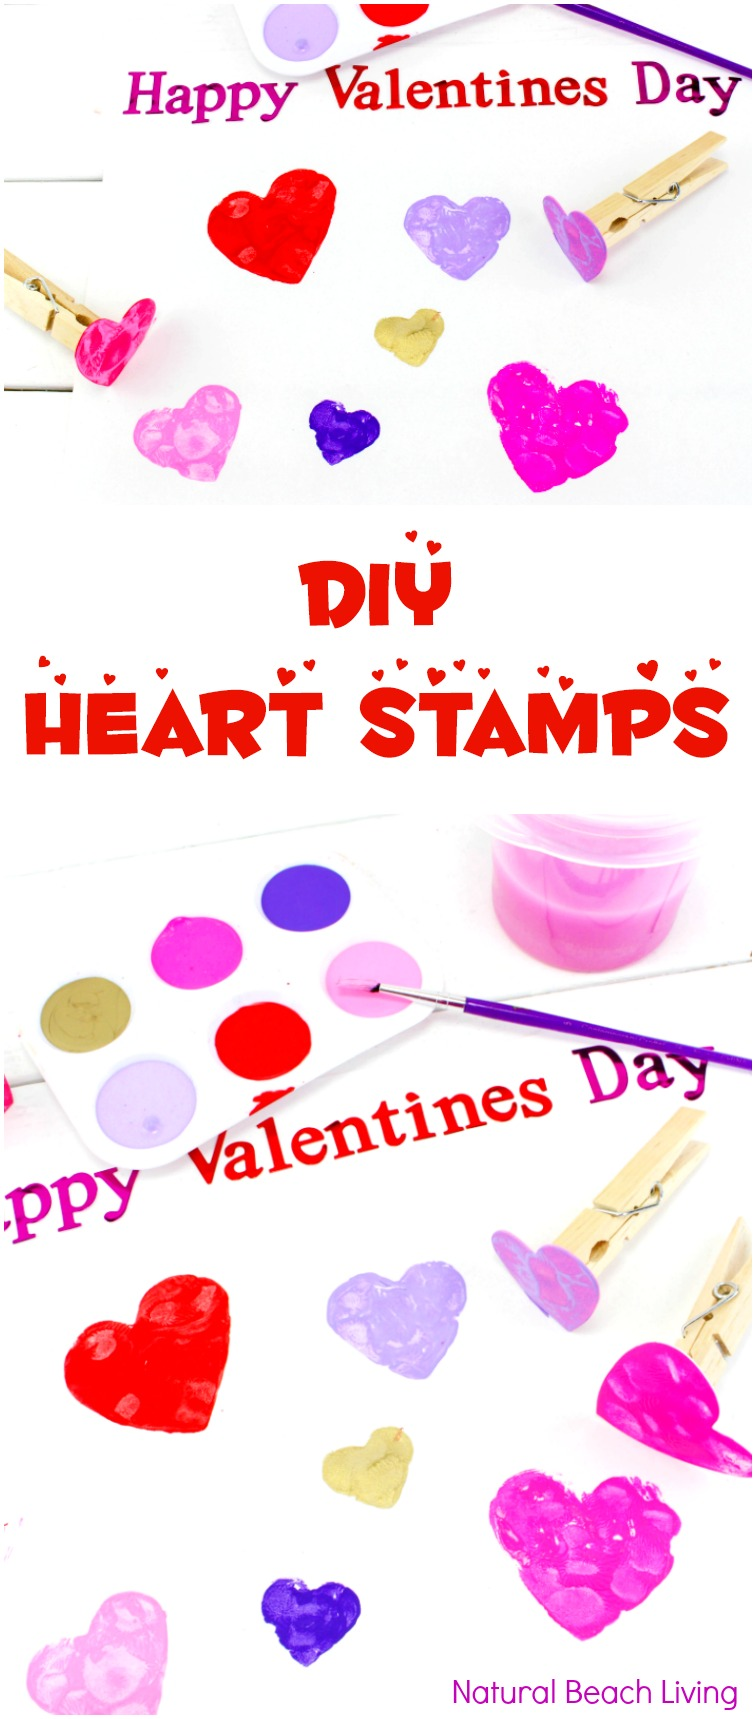 DIY Heart Stamps Make Perfect Preschool Heart Crafts, Easy Heart Art for Valentine's Day, Preschool Valentines Crafts, Fine Motor Activities for toddlers and preschoolers, Easy Preschool Art Projects, Fun Kindergarten and Preschool heart crafts, February Preschool Themes, Hands on activities for kids #preschoolcrafts #Valentinesday